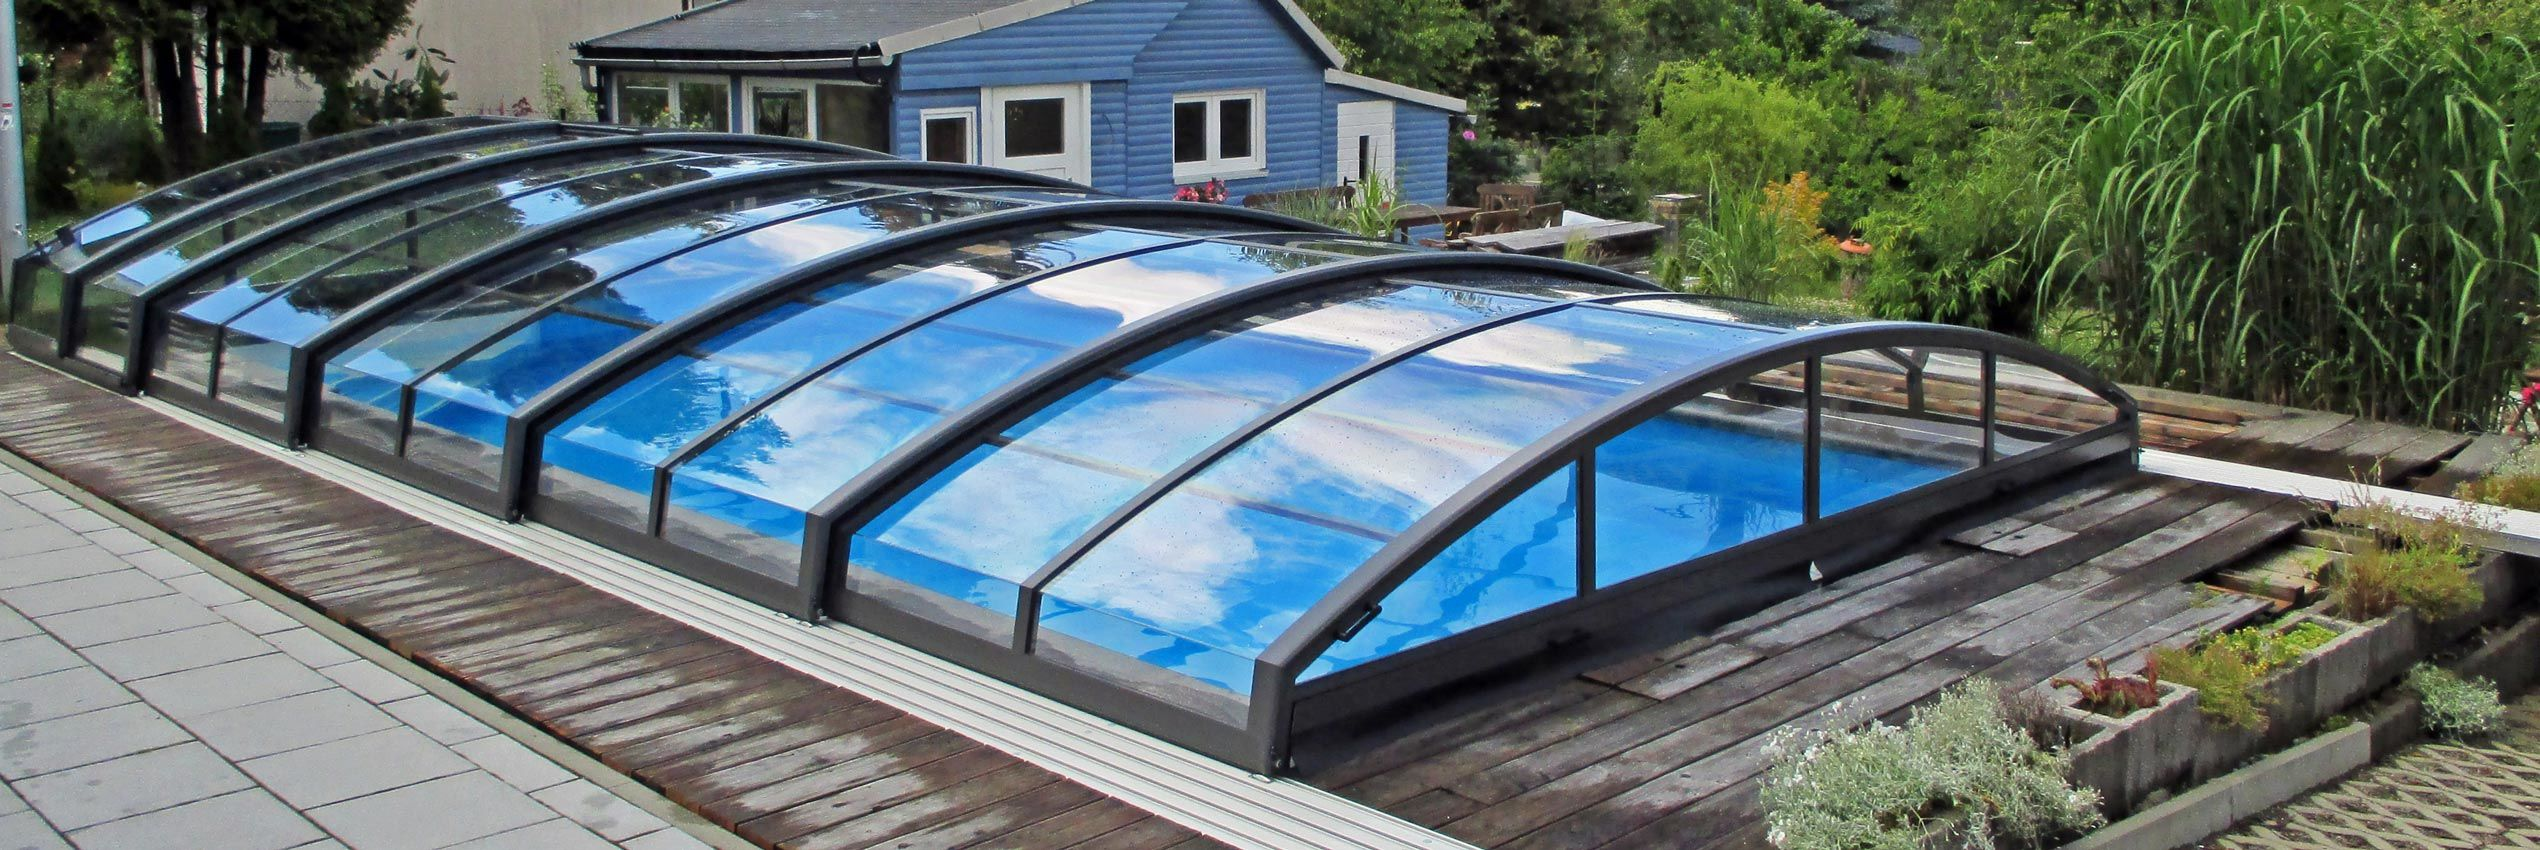 Swimming pool enclosure Imperia